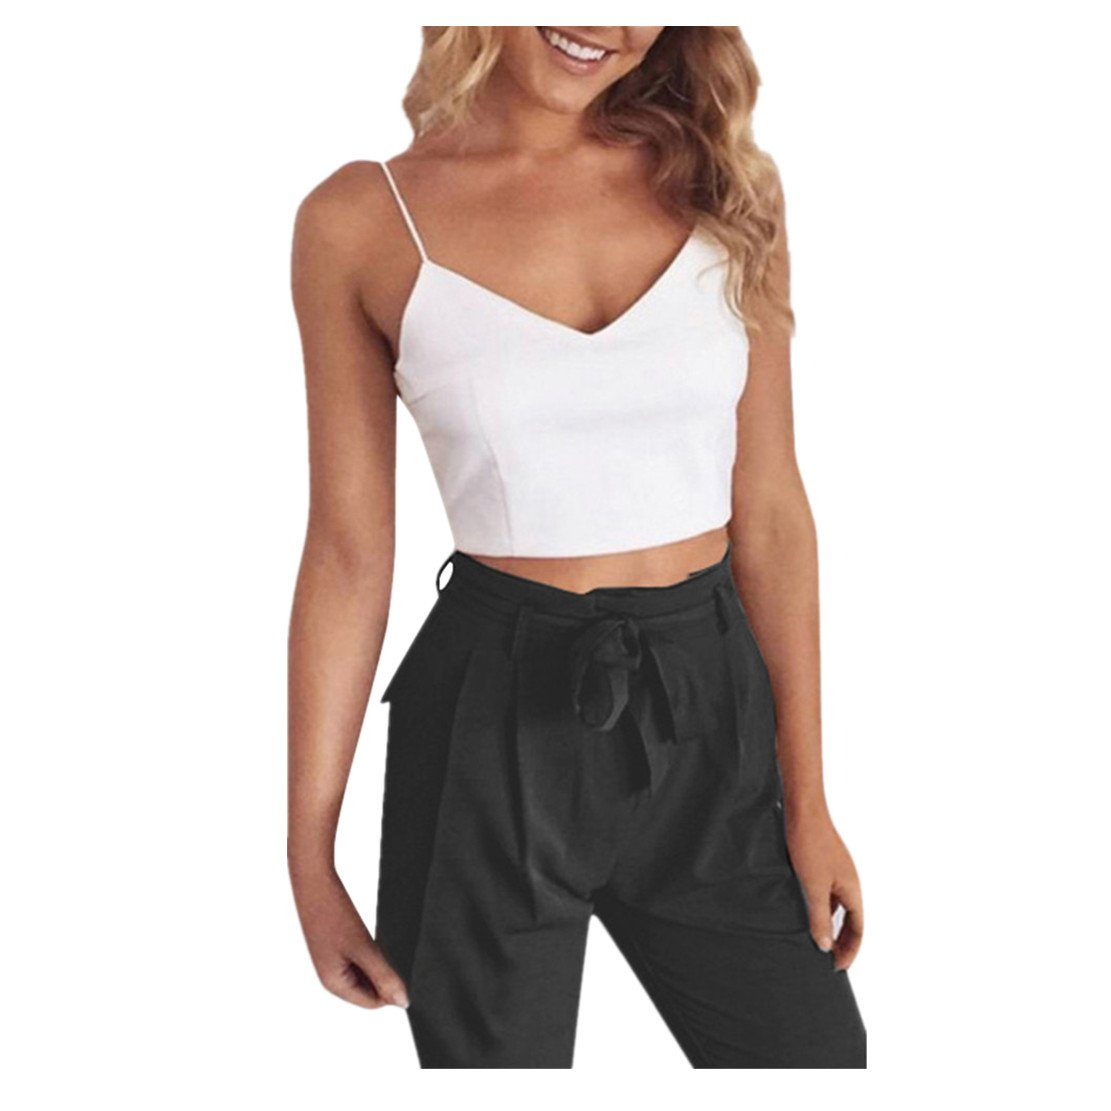 WEUIE Hot Sale Women 2 Piece Solid Sleeveless Sling Tank Elastic Zipper Band Belt Pants Set (M,Black)